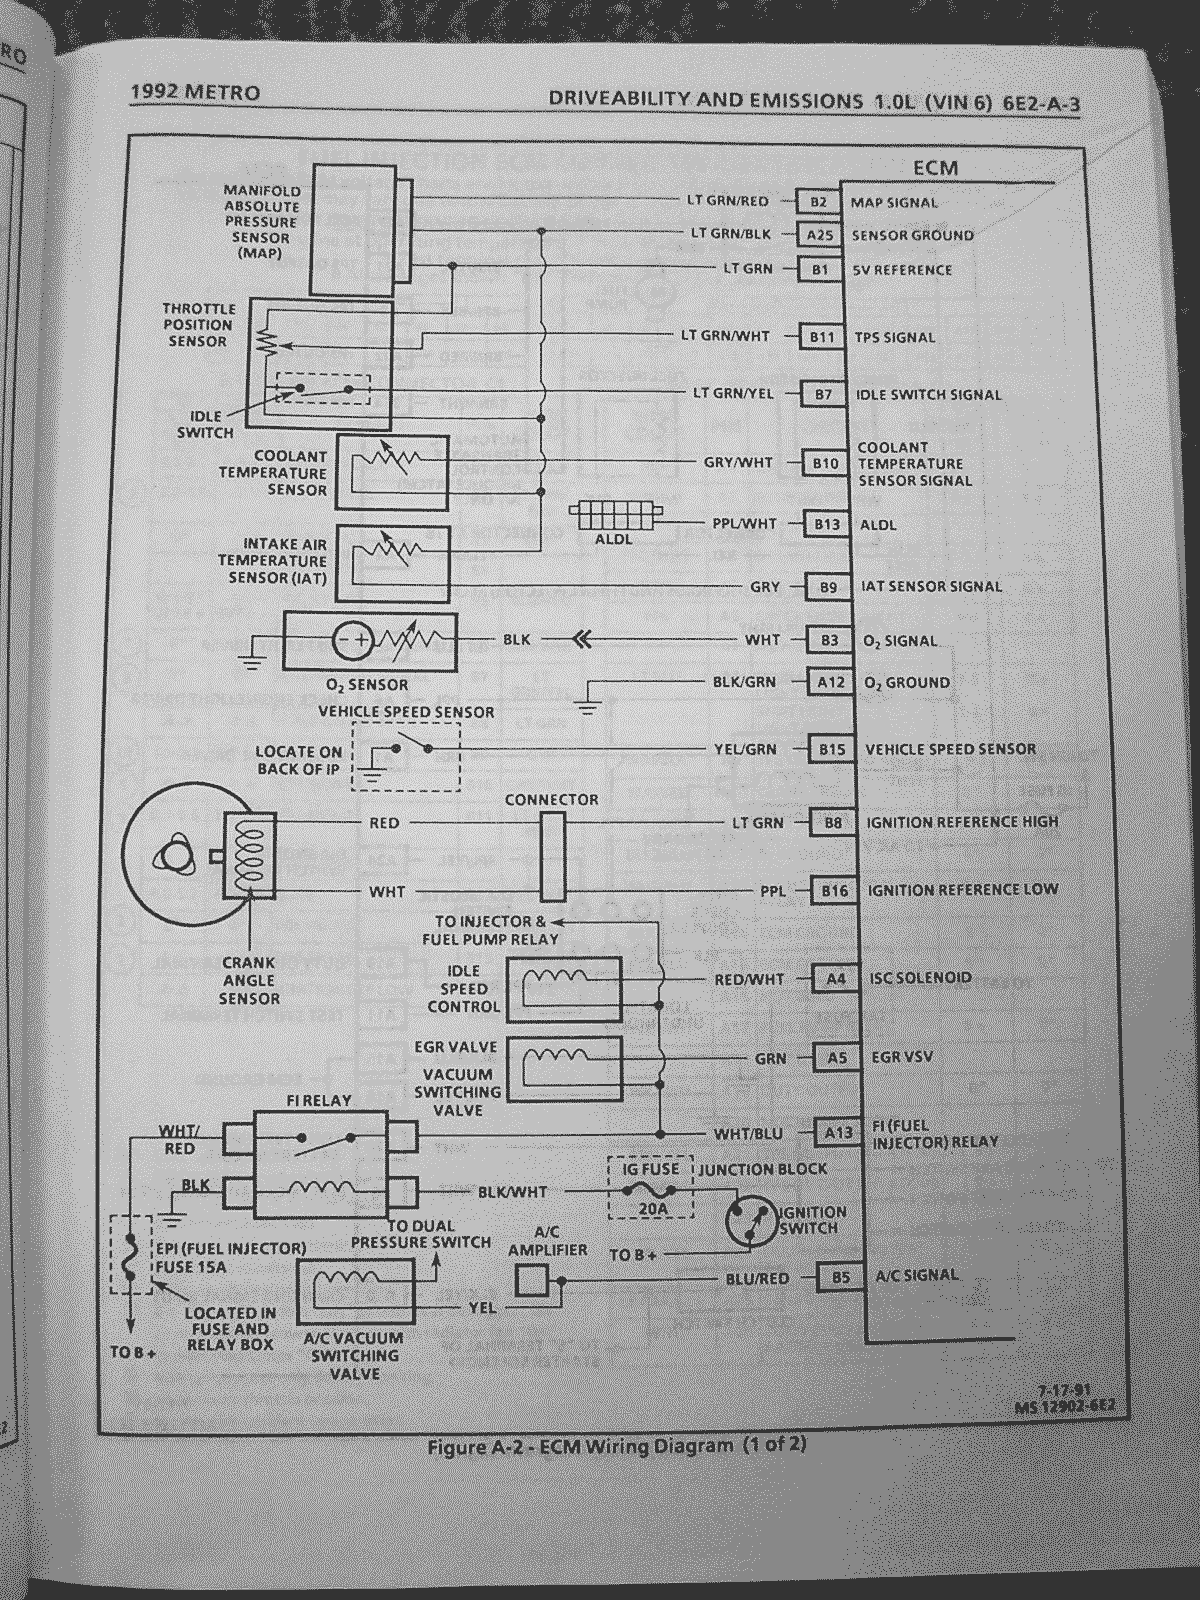 chevy metro wiring diagram wiring data rh unroutine co House Fuse Box Wiring Diagram House Fuse Box Wiring Diagram